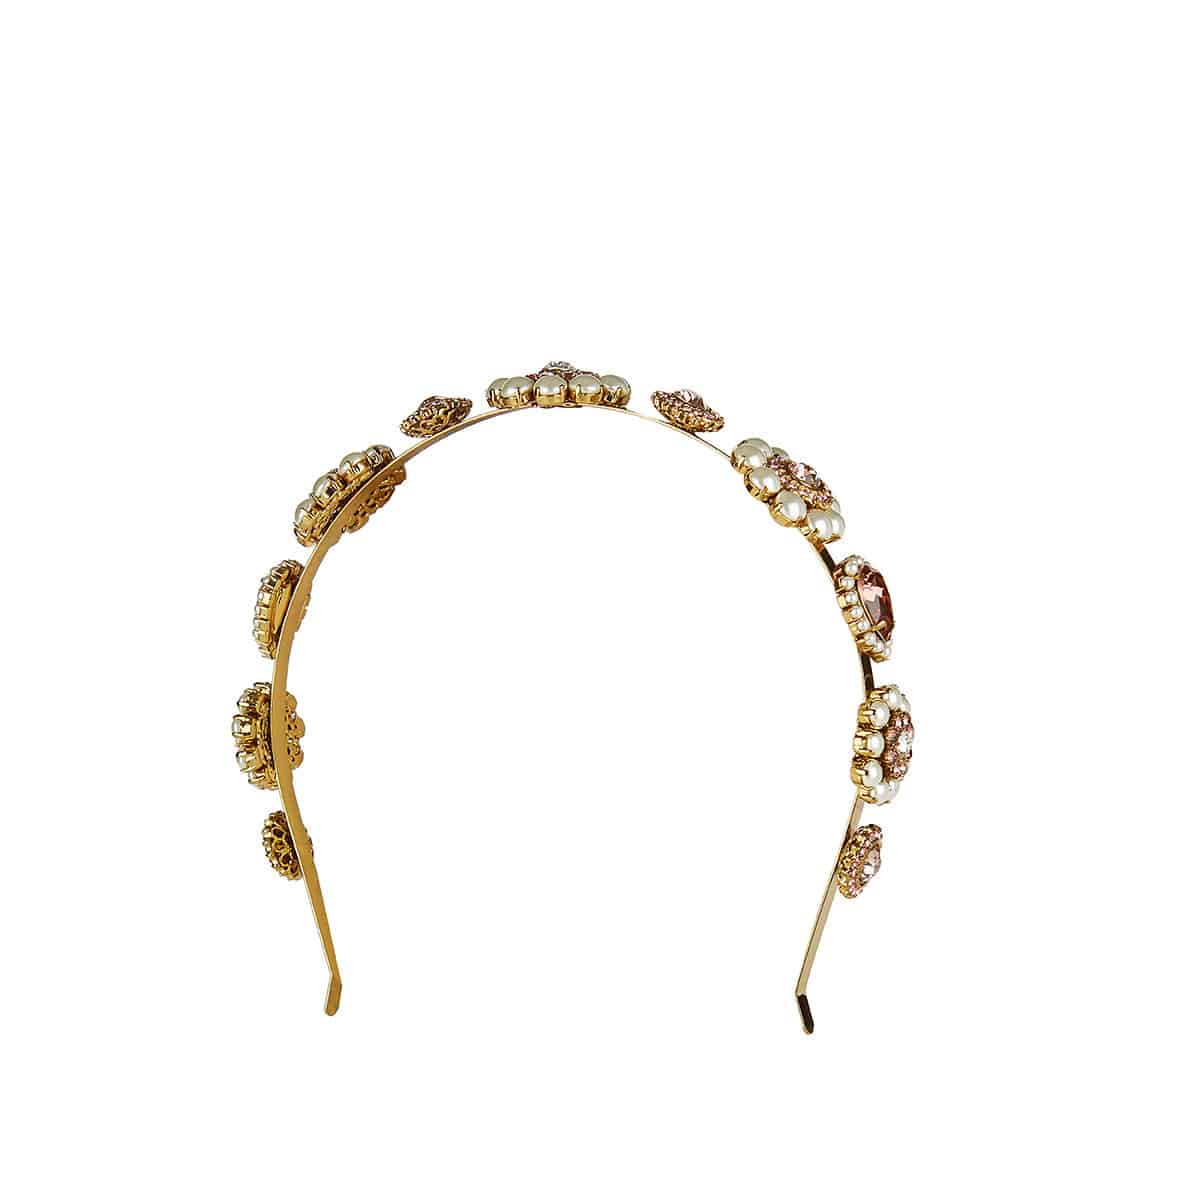 Embellished jeweled headband